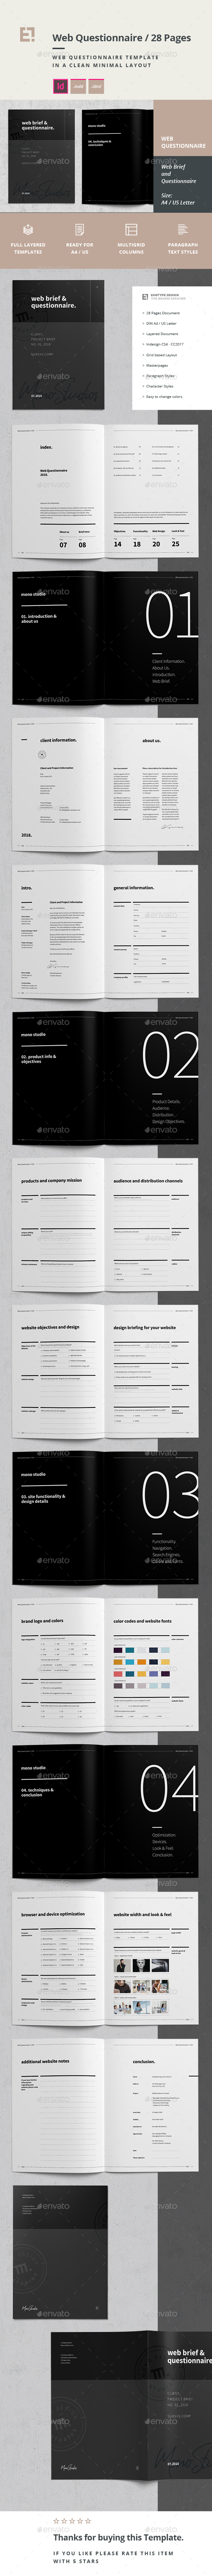 Questionnaire Web Design - Informational Brochures